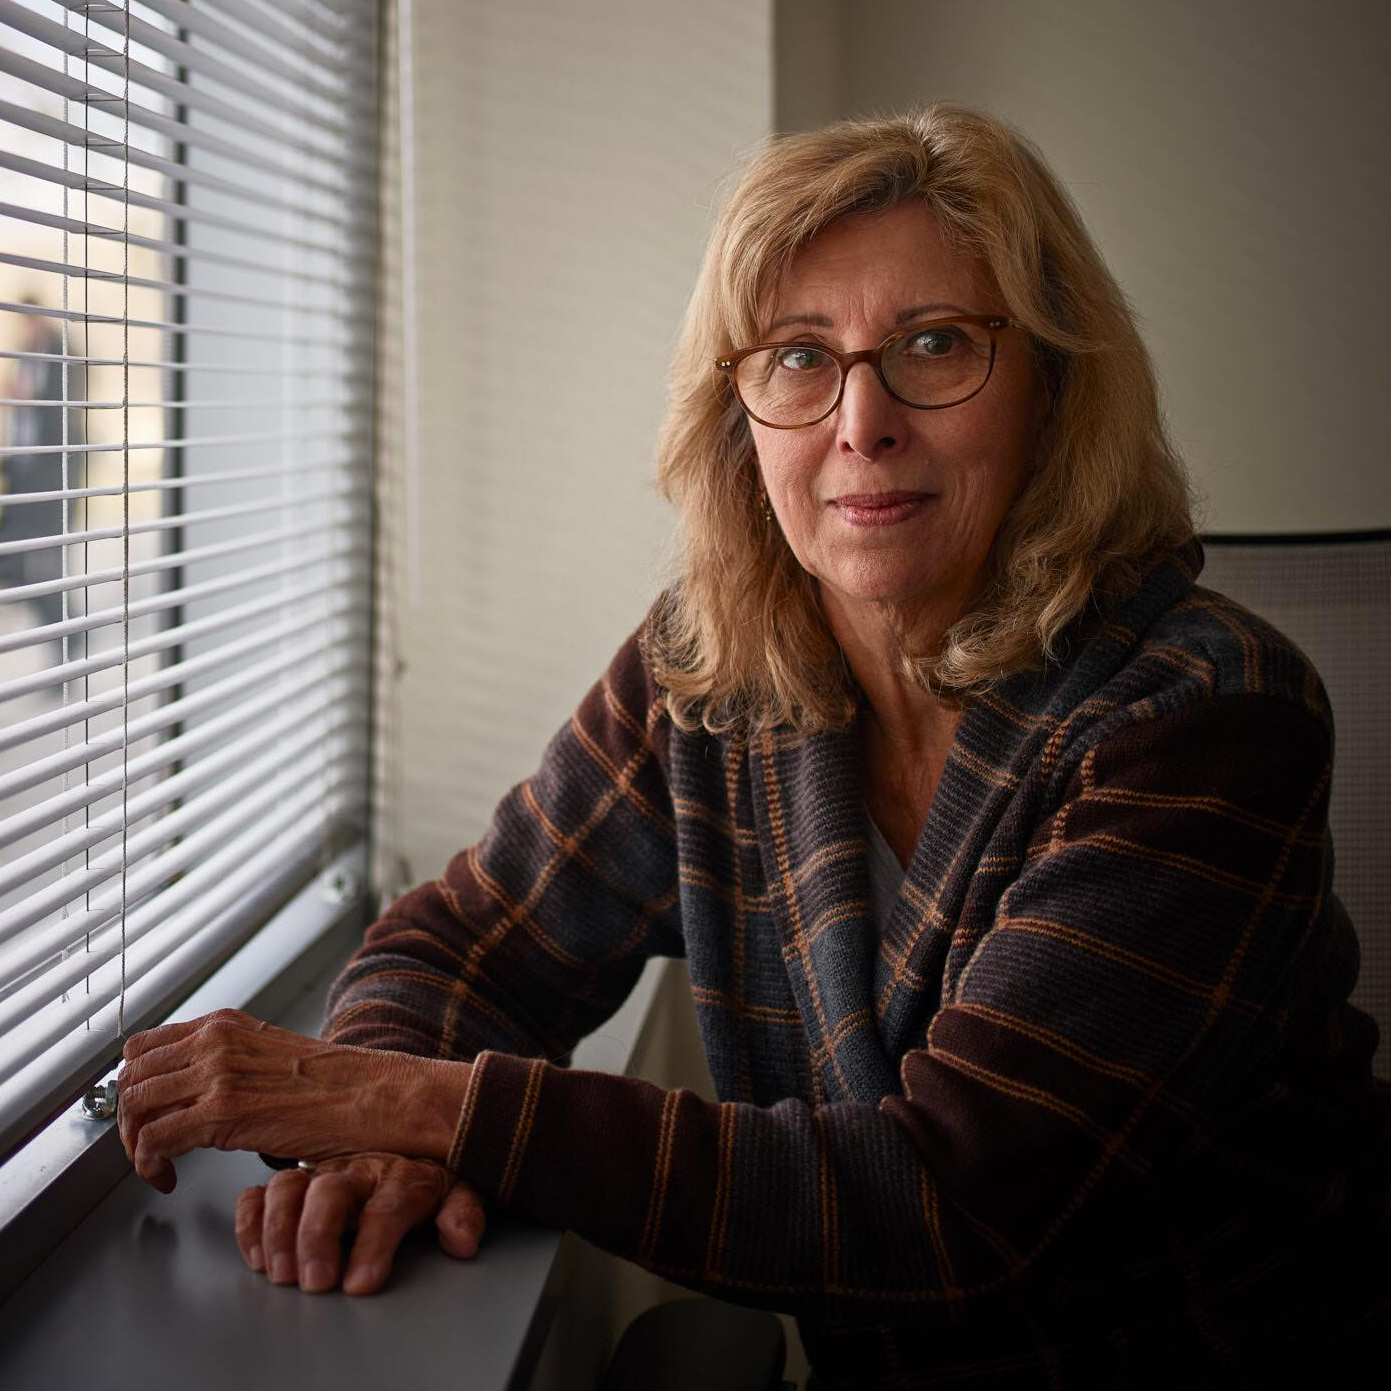 Michelle Smith sits next to a window with blinds on it with her hands crossed on the window sill. She has shoulder length blond hair and is wearing red rimmed glasses, she is also wearing a plaid jacket.